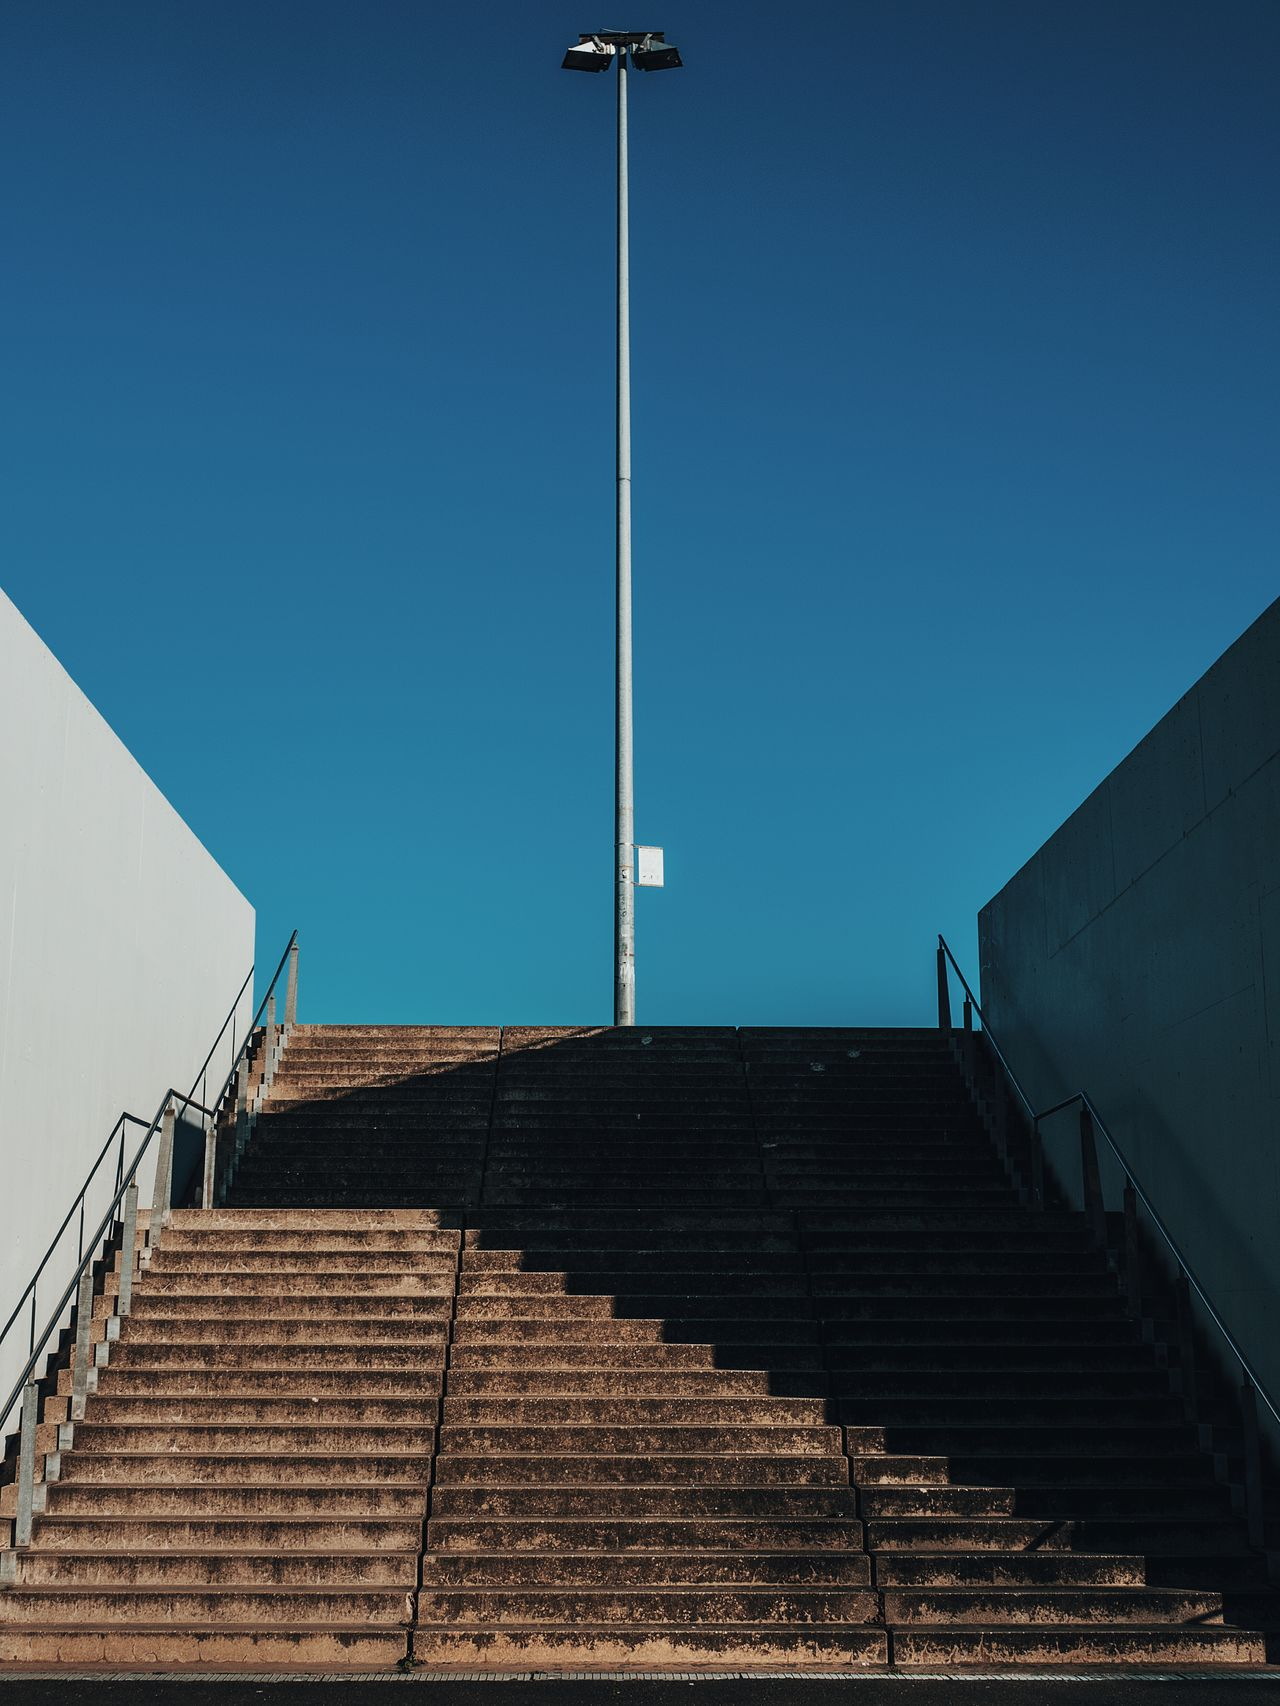 Berlin Velodrome Architecture Blue Sky Clear Sky Concrete Empty Empty Places Minimal Minimalist Architecture Modern Architecture No People Shadow Shadows & Lights Sky Stair Staircase Stairs Symmetrical Symmetry